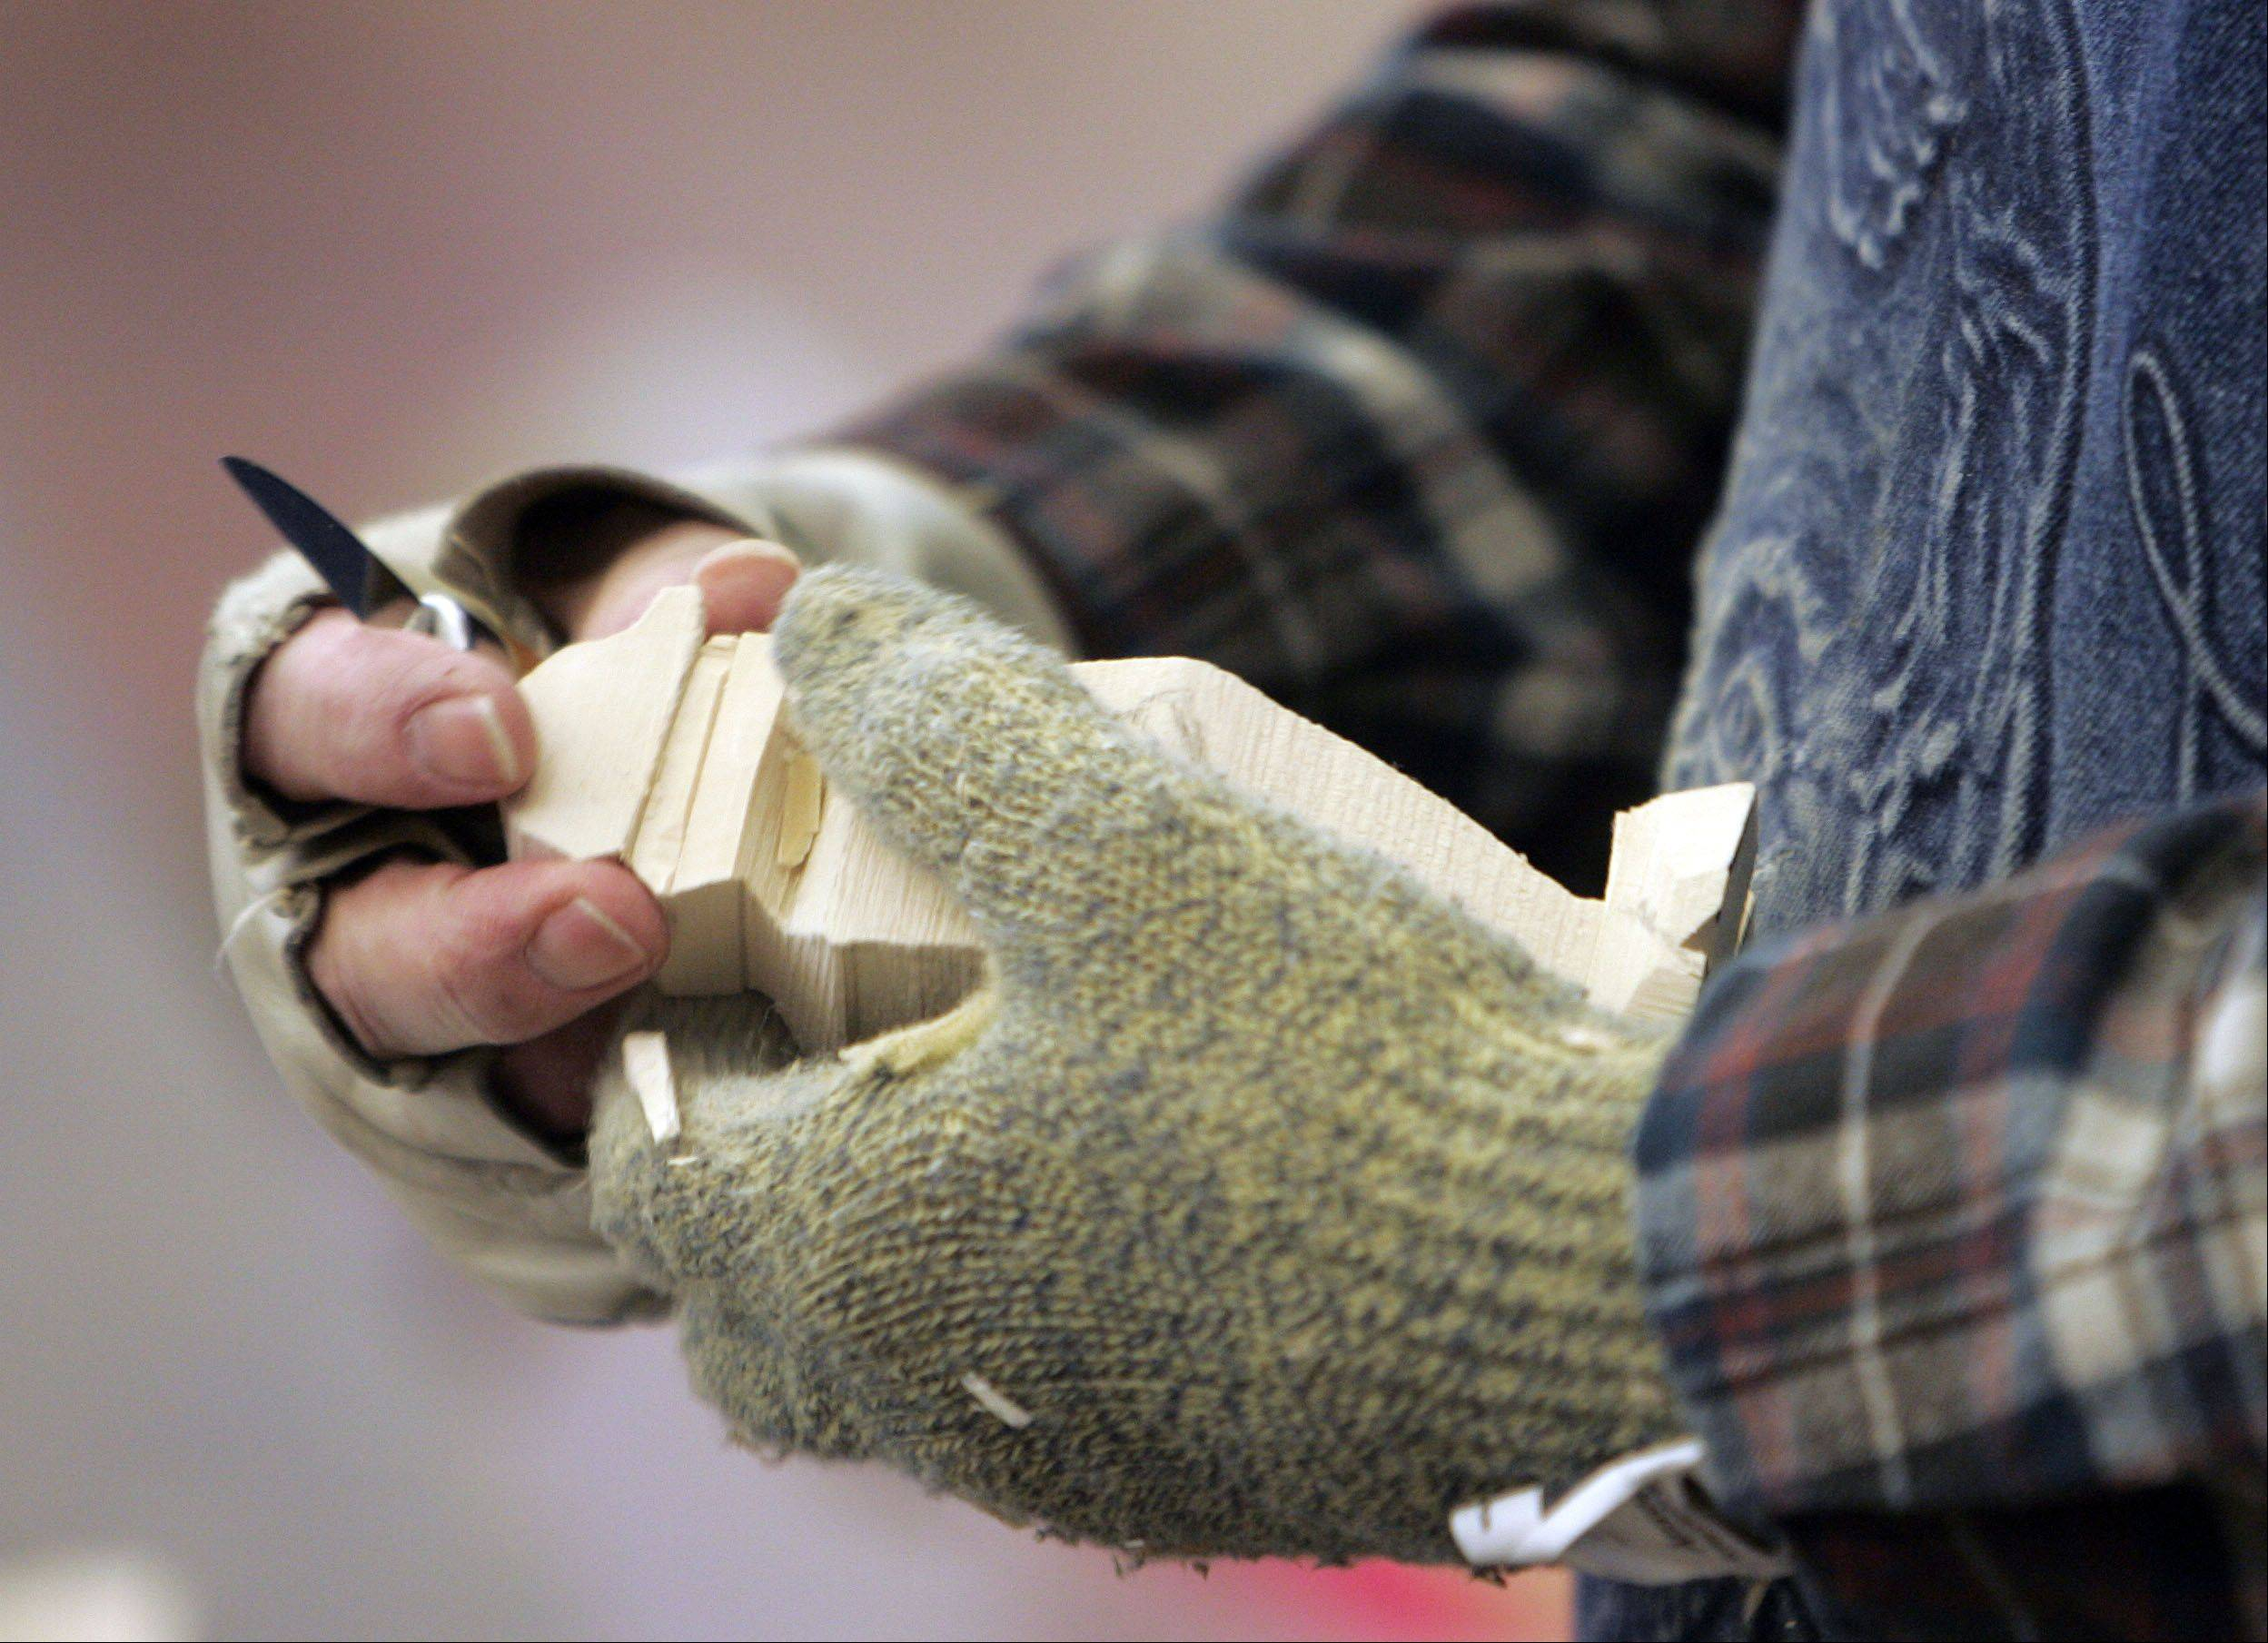 Dave Kublank explains how to do Scandinavian flat plain carving during a demonstration at the Winter Wood Wonders art show Saturday at the Kane County Fairgrounds in St. Charles.